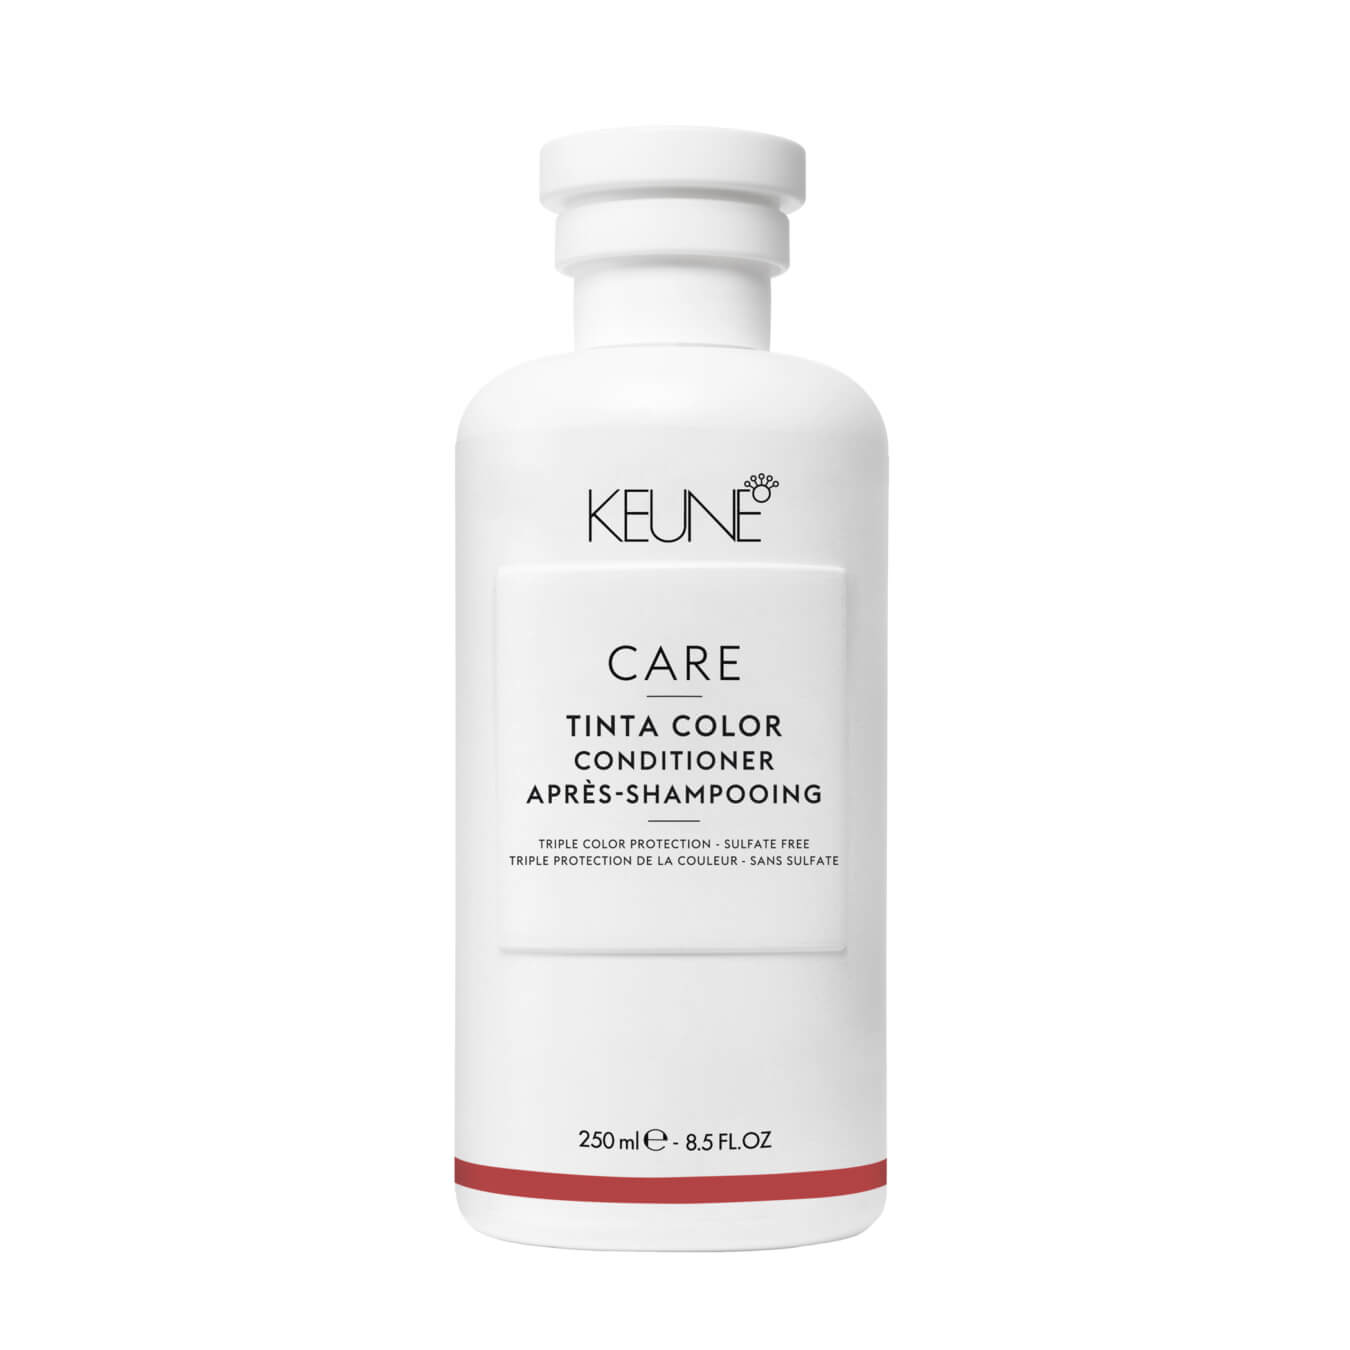 Koop Keune Care Tinta Color Care Conditioner 250ml